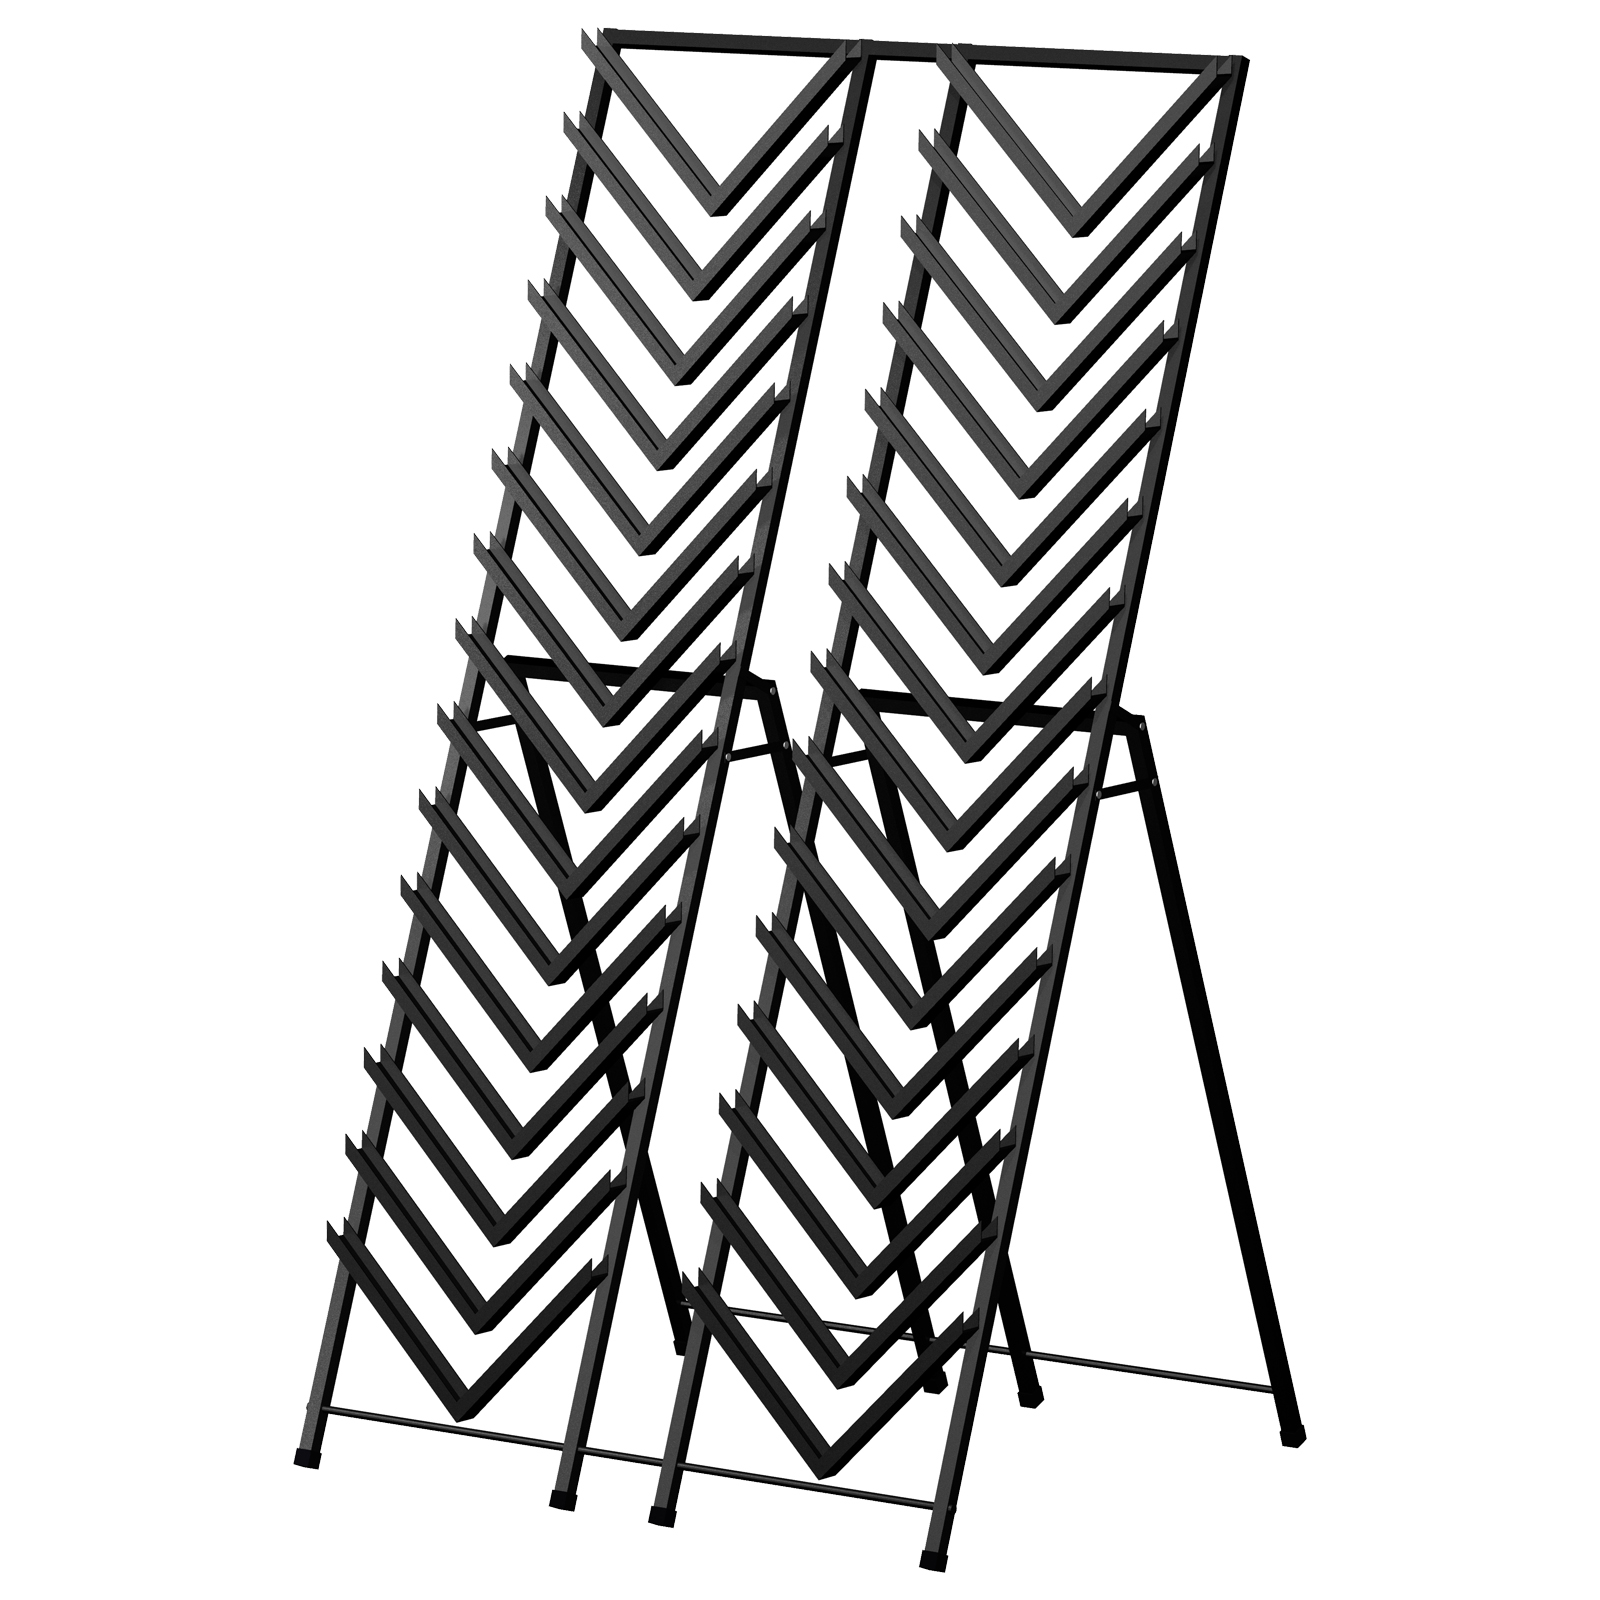 D30 Easel A-Frame Tower Sturdy Steel Double Front Load Ceramic Tile Stone Marble Channel System Showroom Display